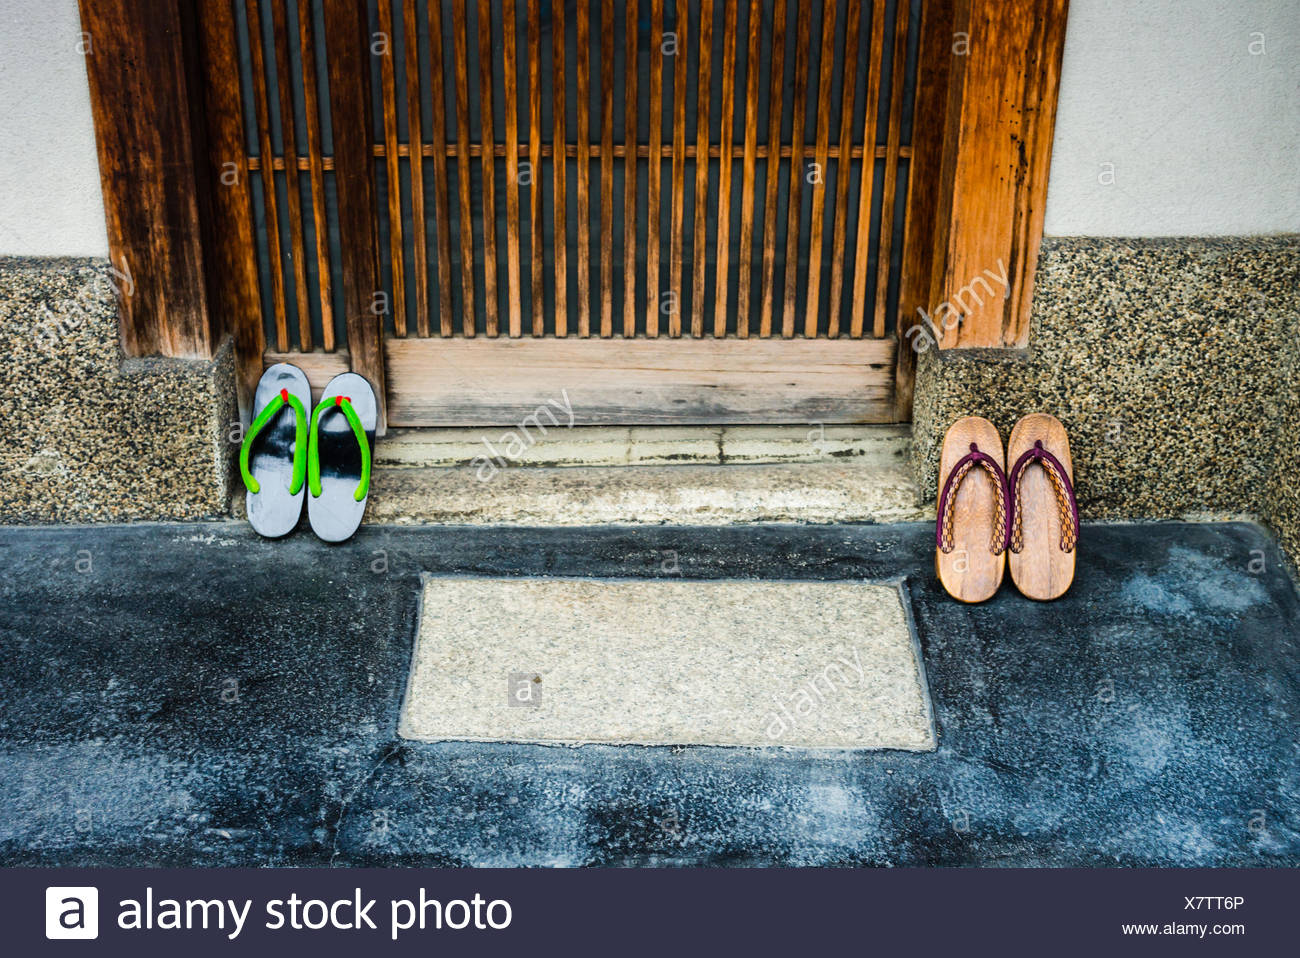 Traditional Japanese sandals. - Stock Image